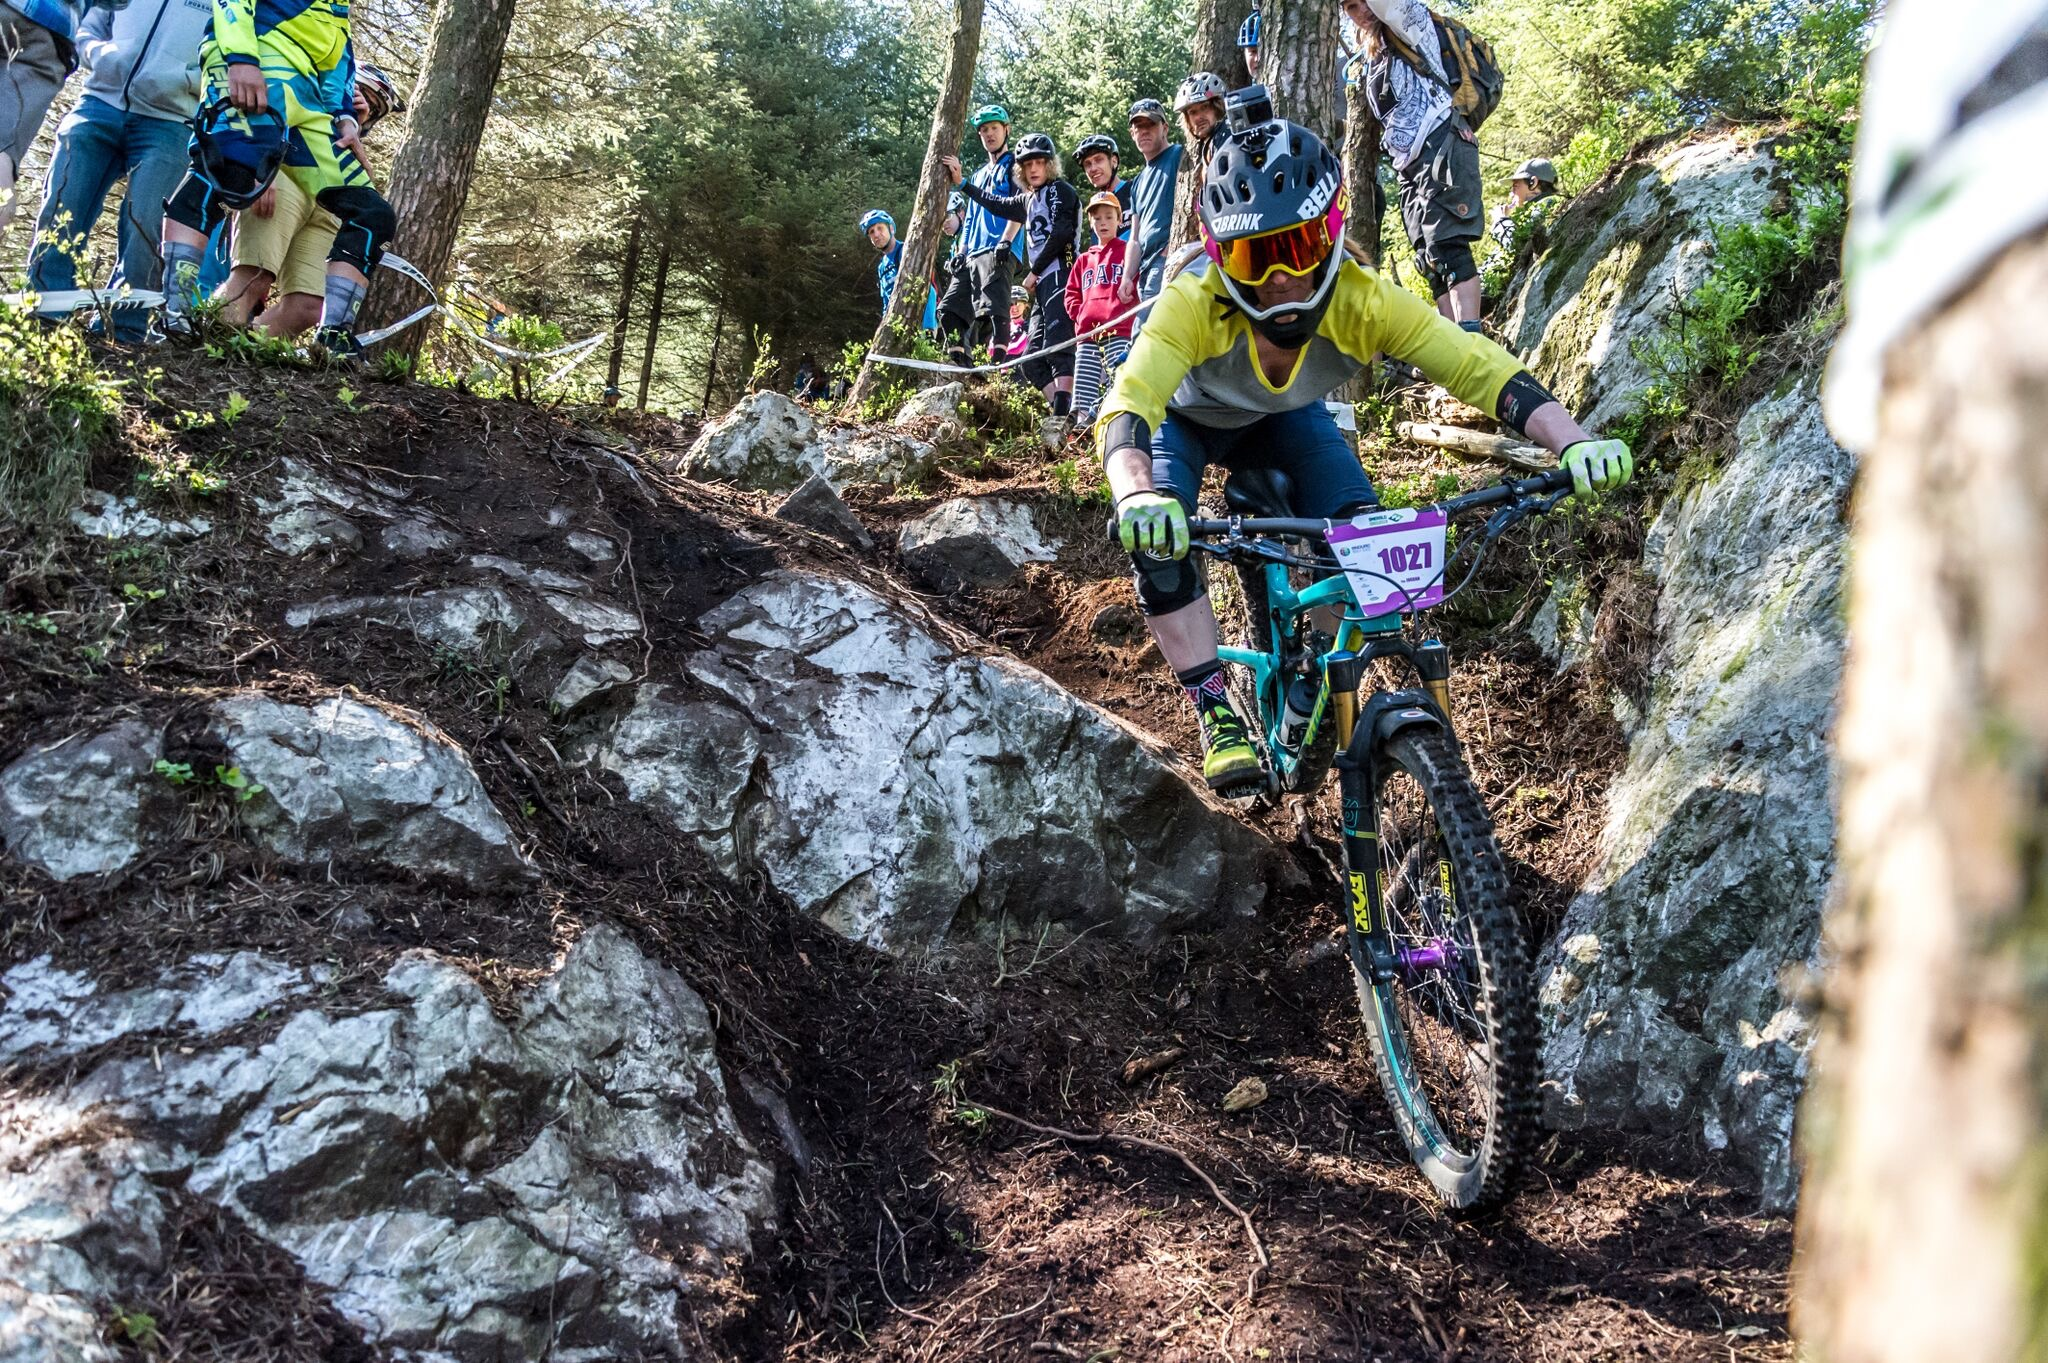 A great shot of me competing in the Enduro World Series captured by Dan Wyre Photography